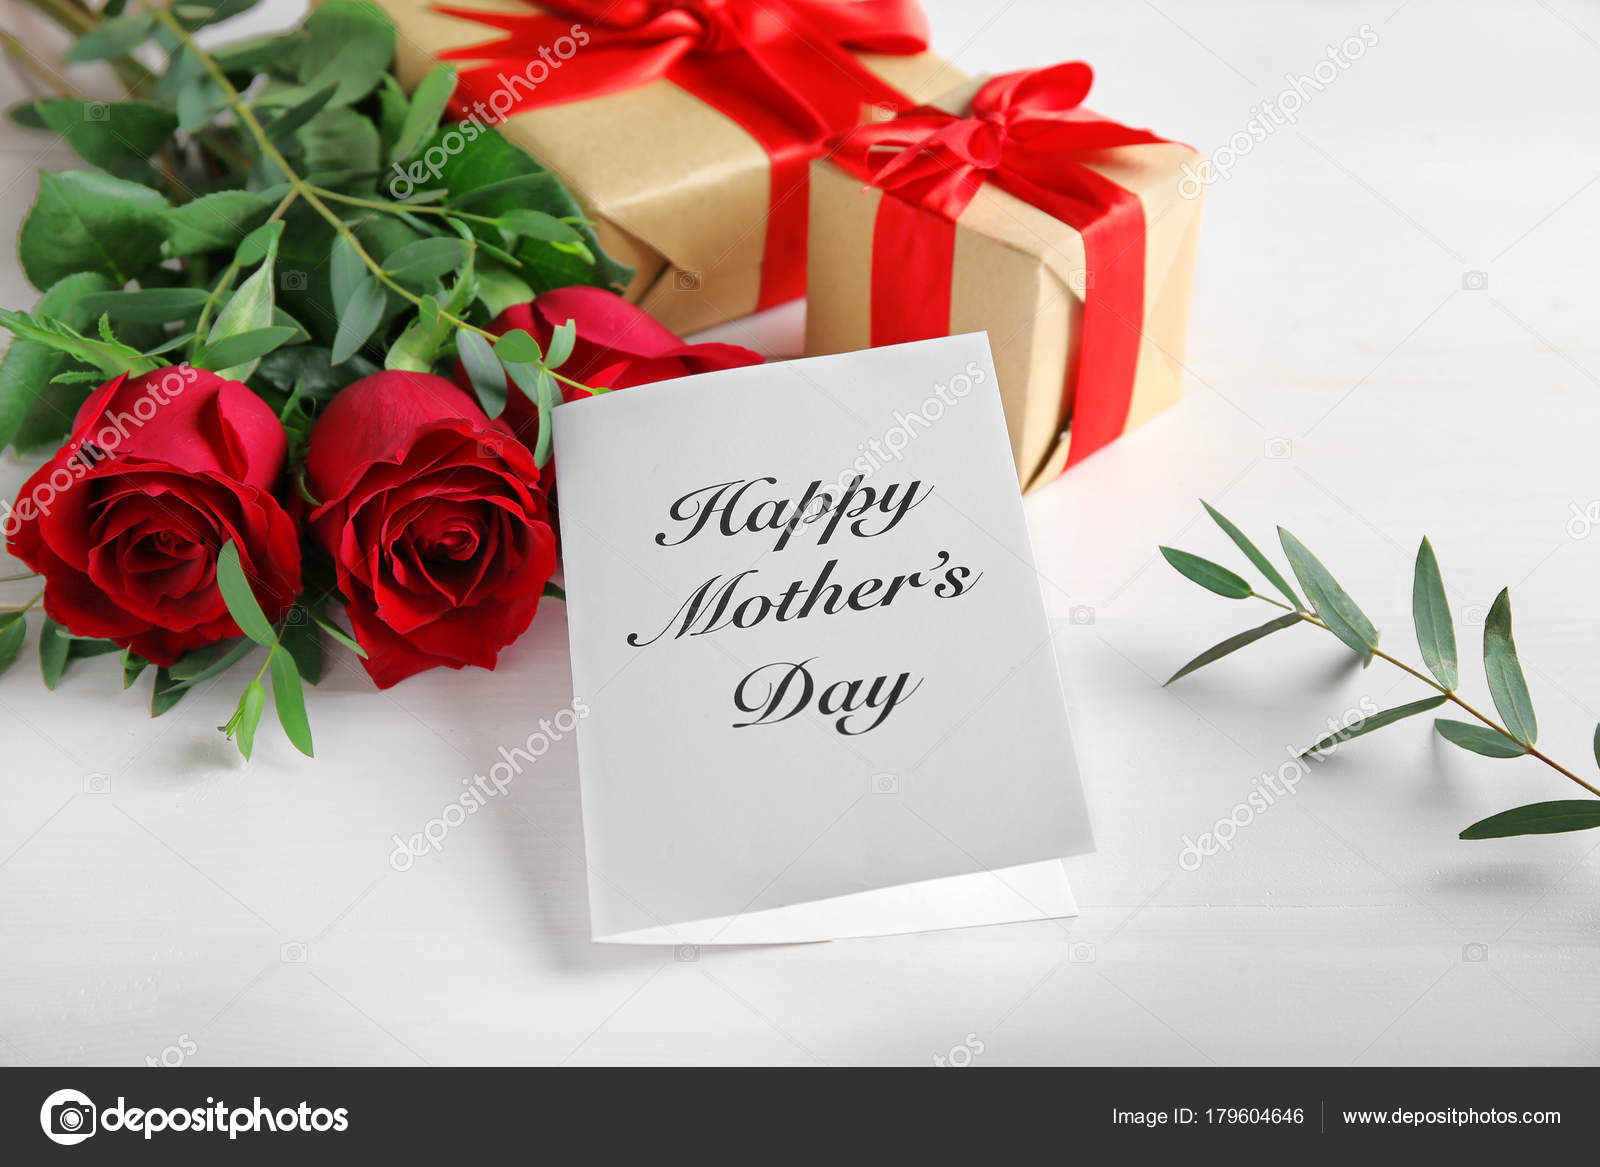 Greeting card with words happy mothers day red roses and gift greeting card with words m4hsunfo